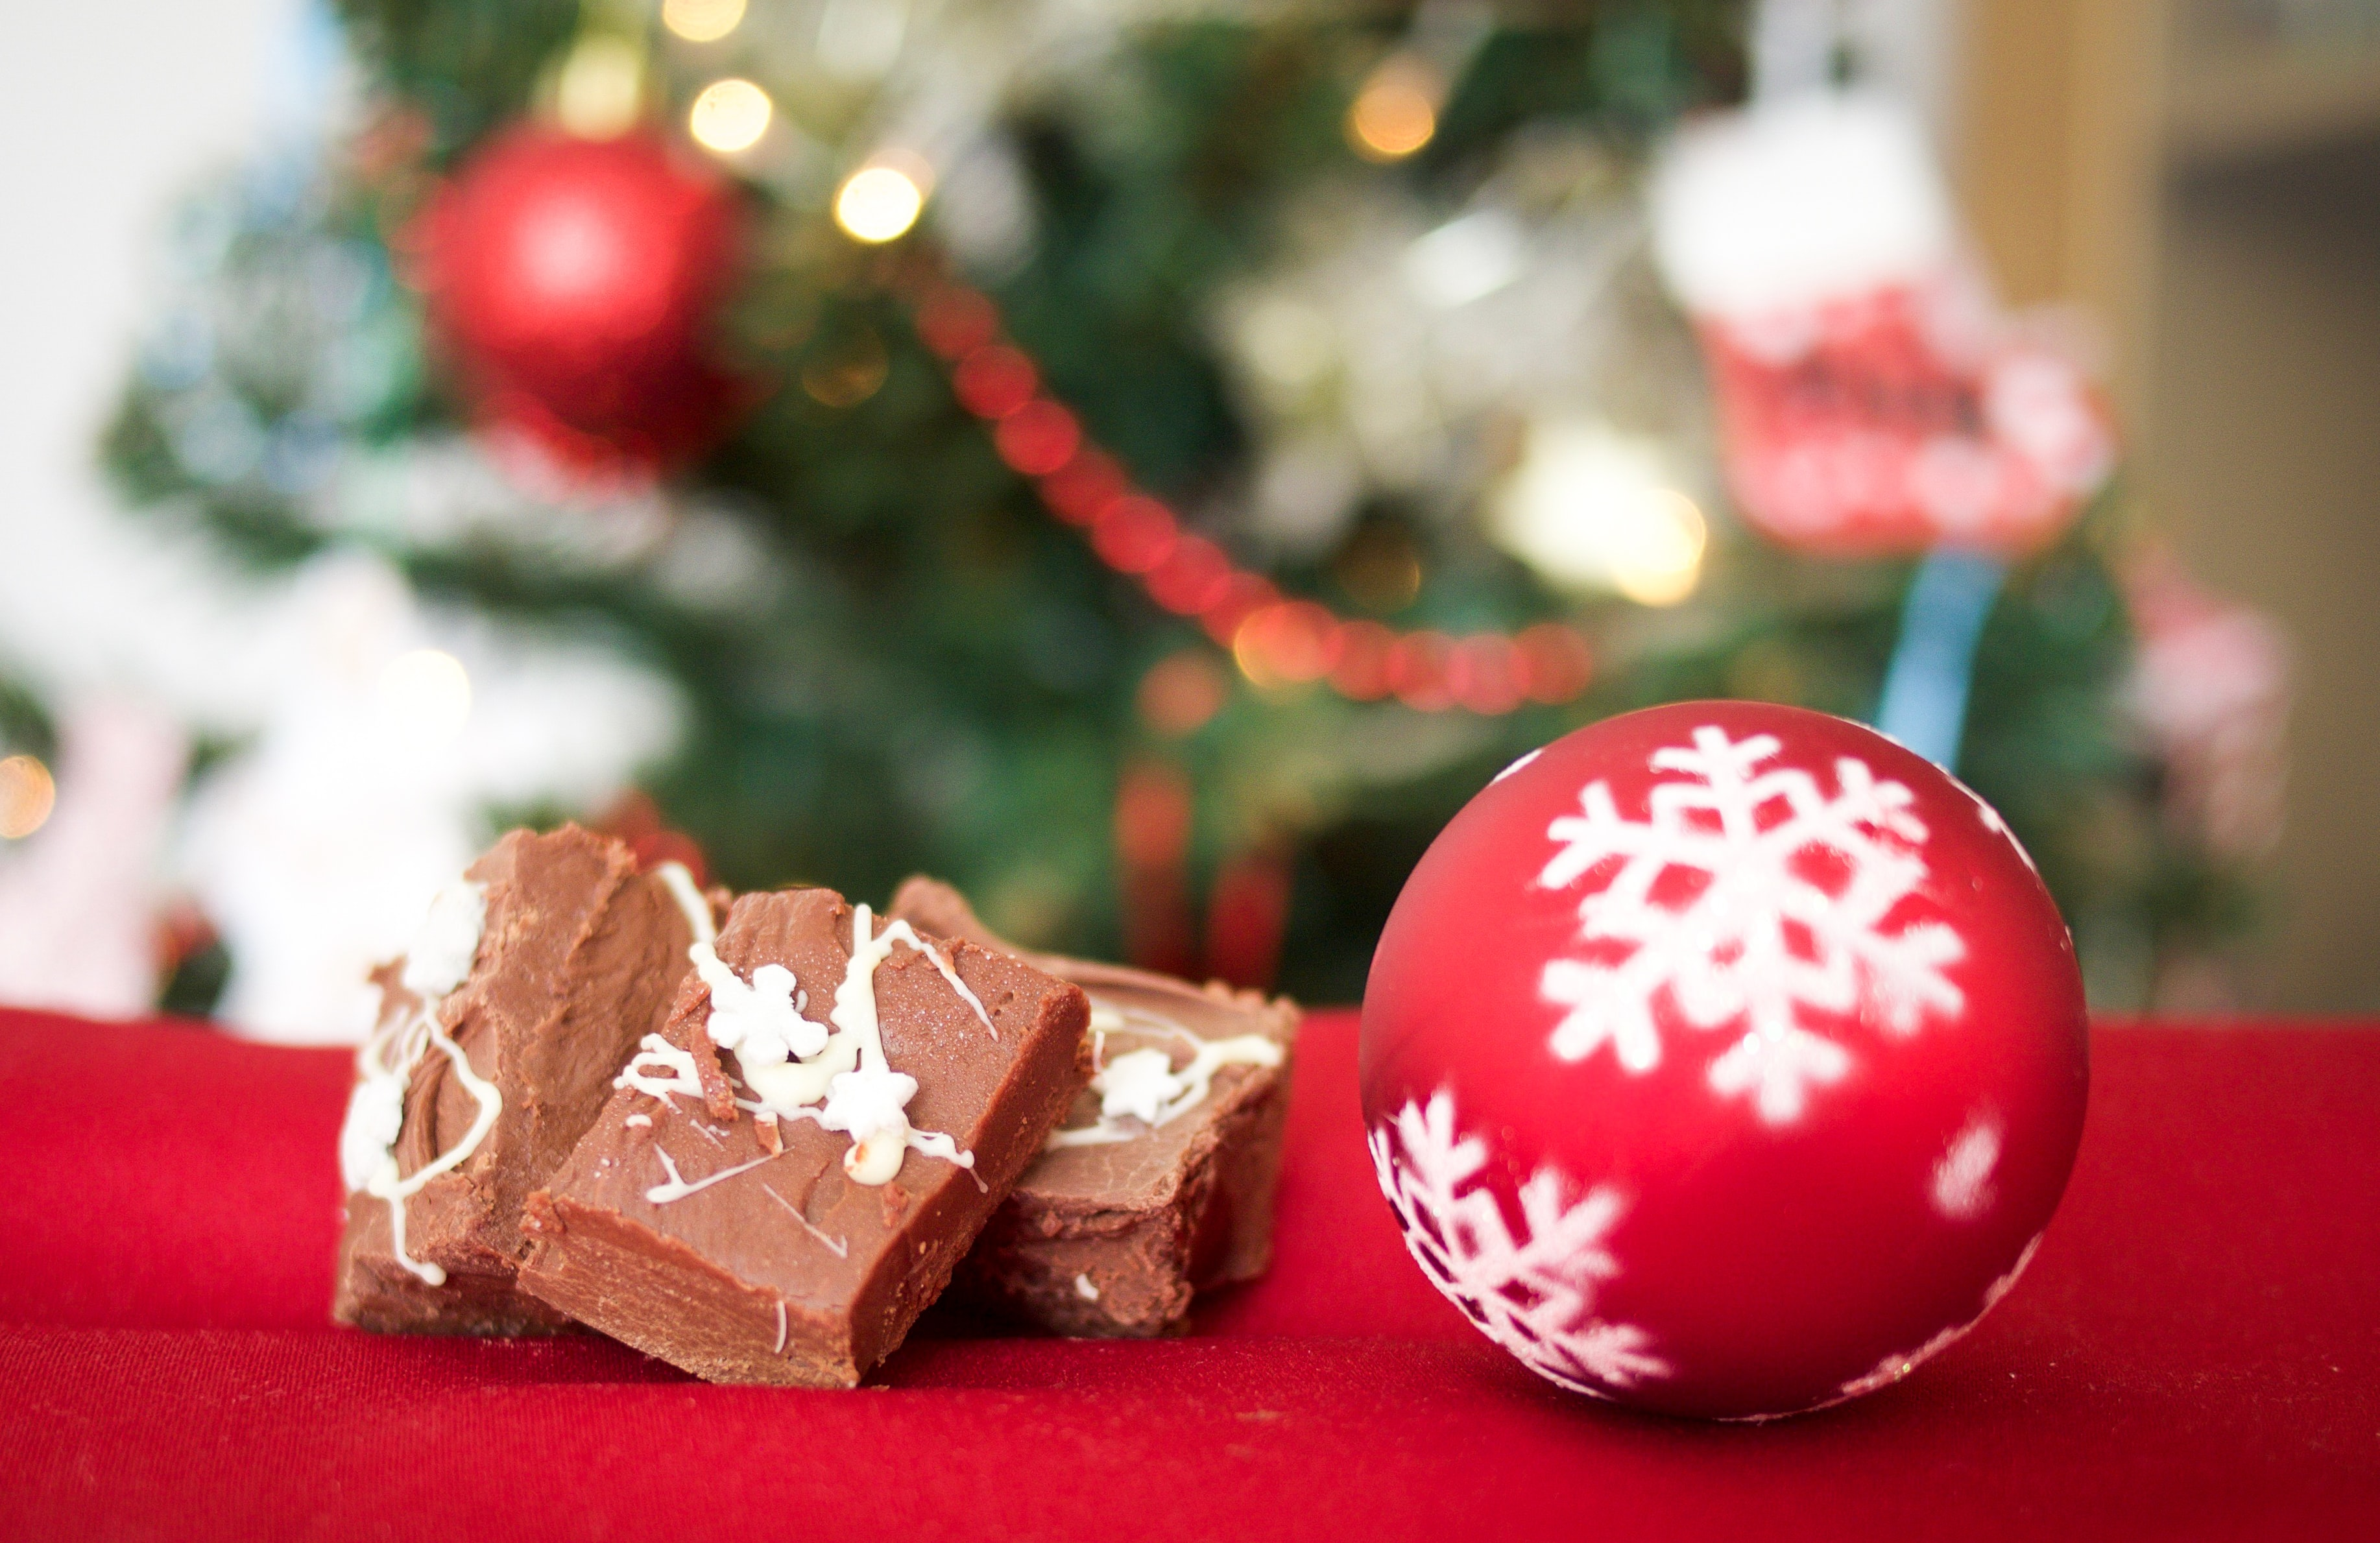 red and white bauble beside chocolates